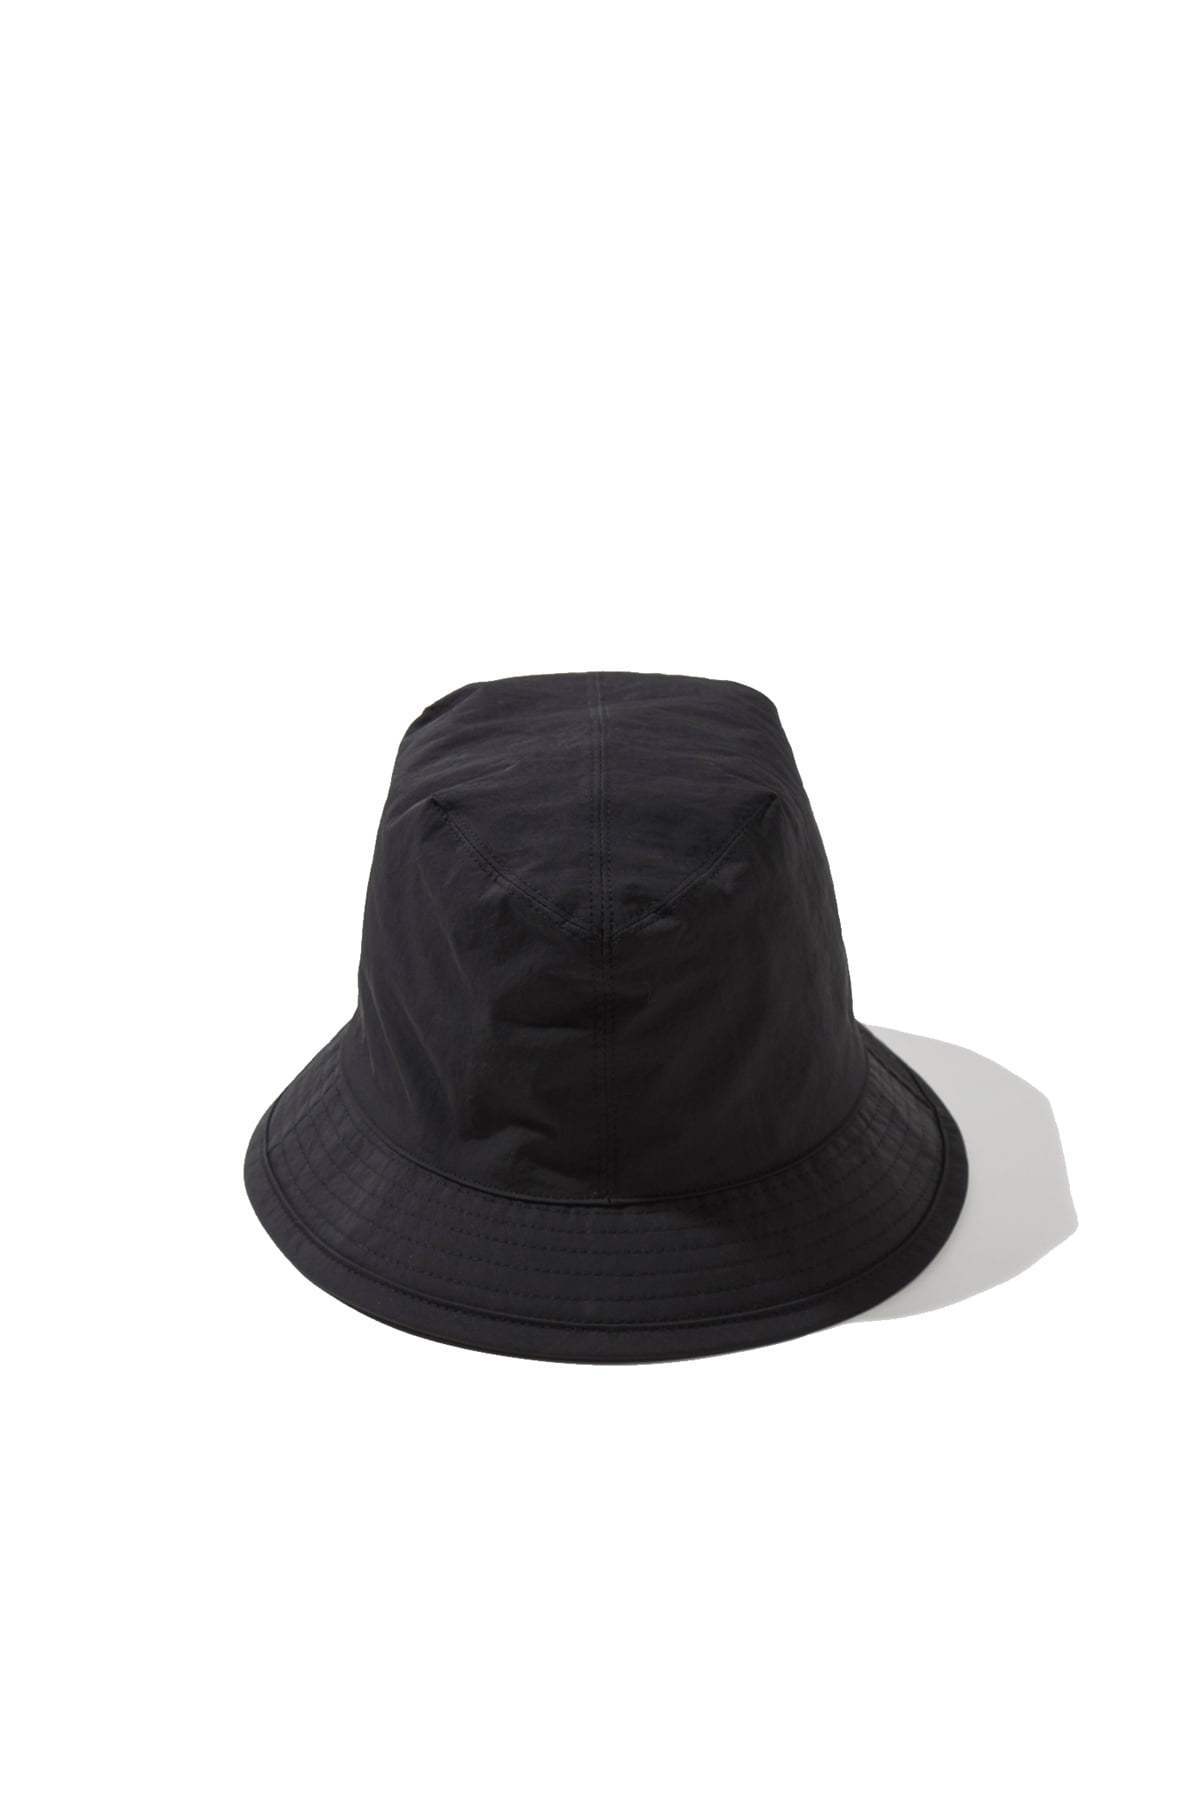 Blankof : HLG 01 H3 Hunter Hat (Black)